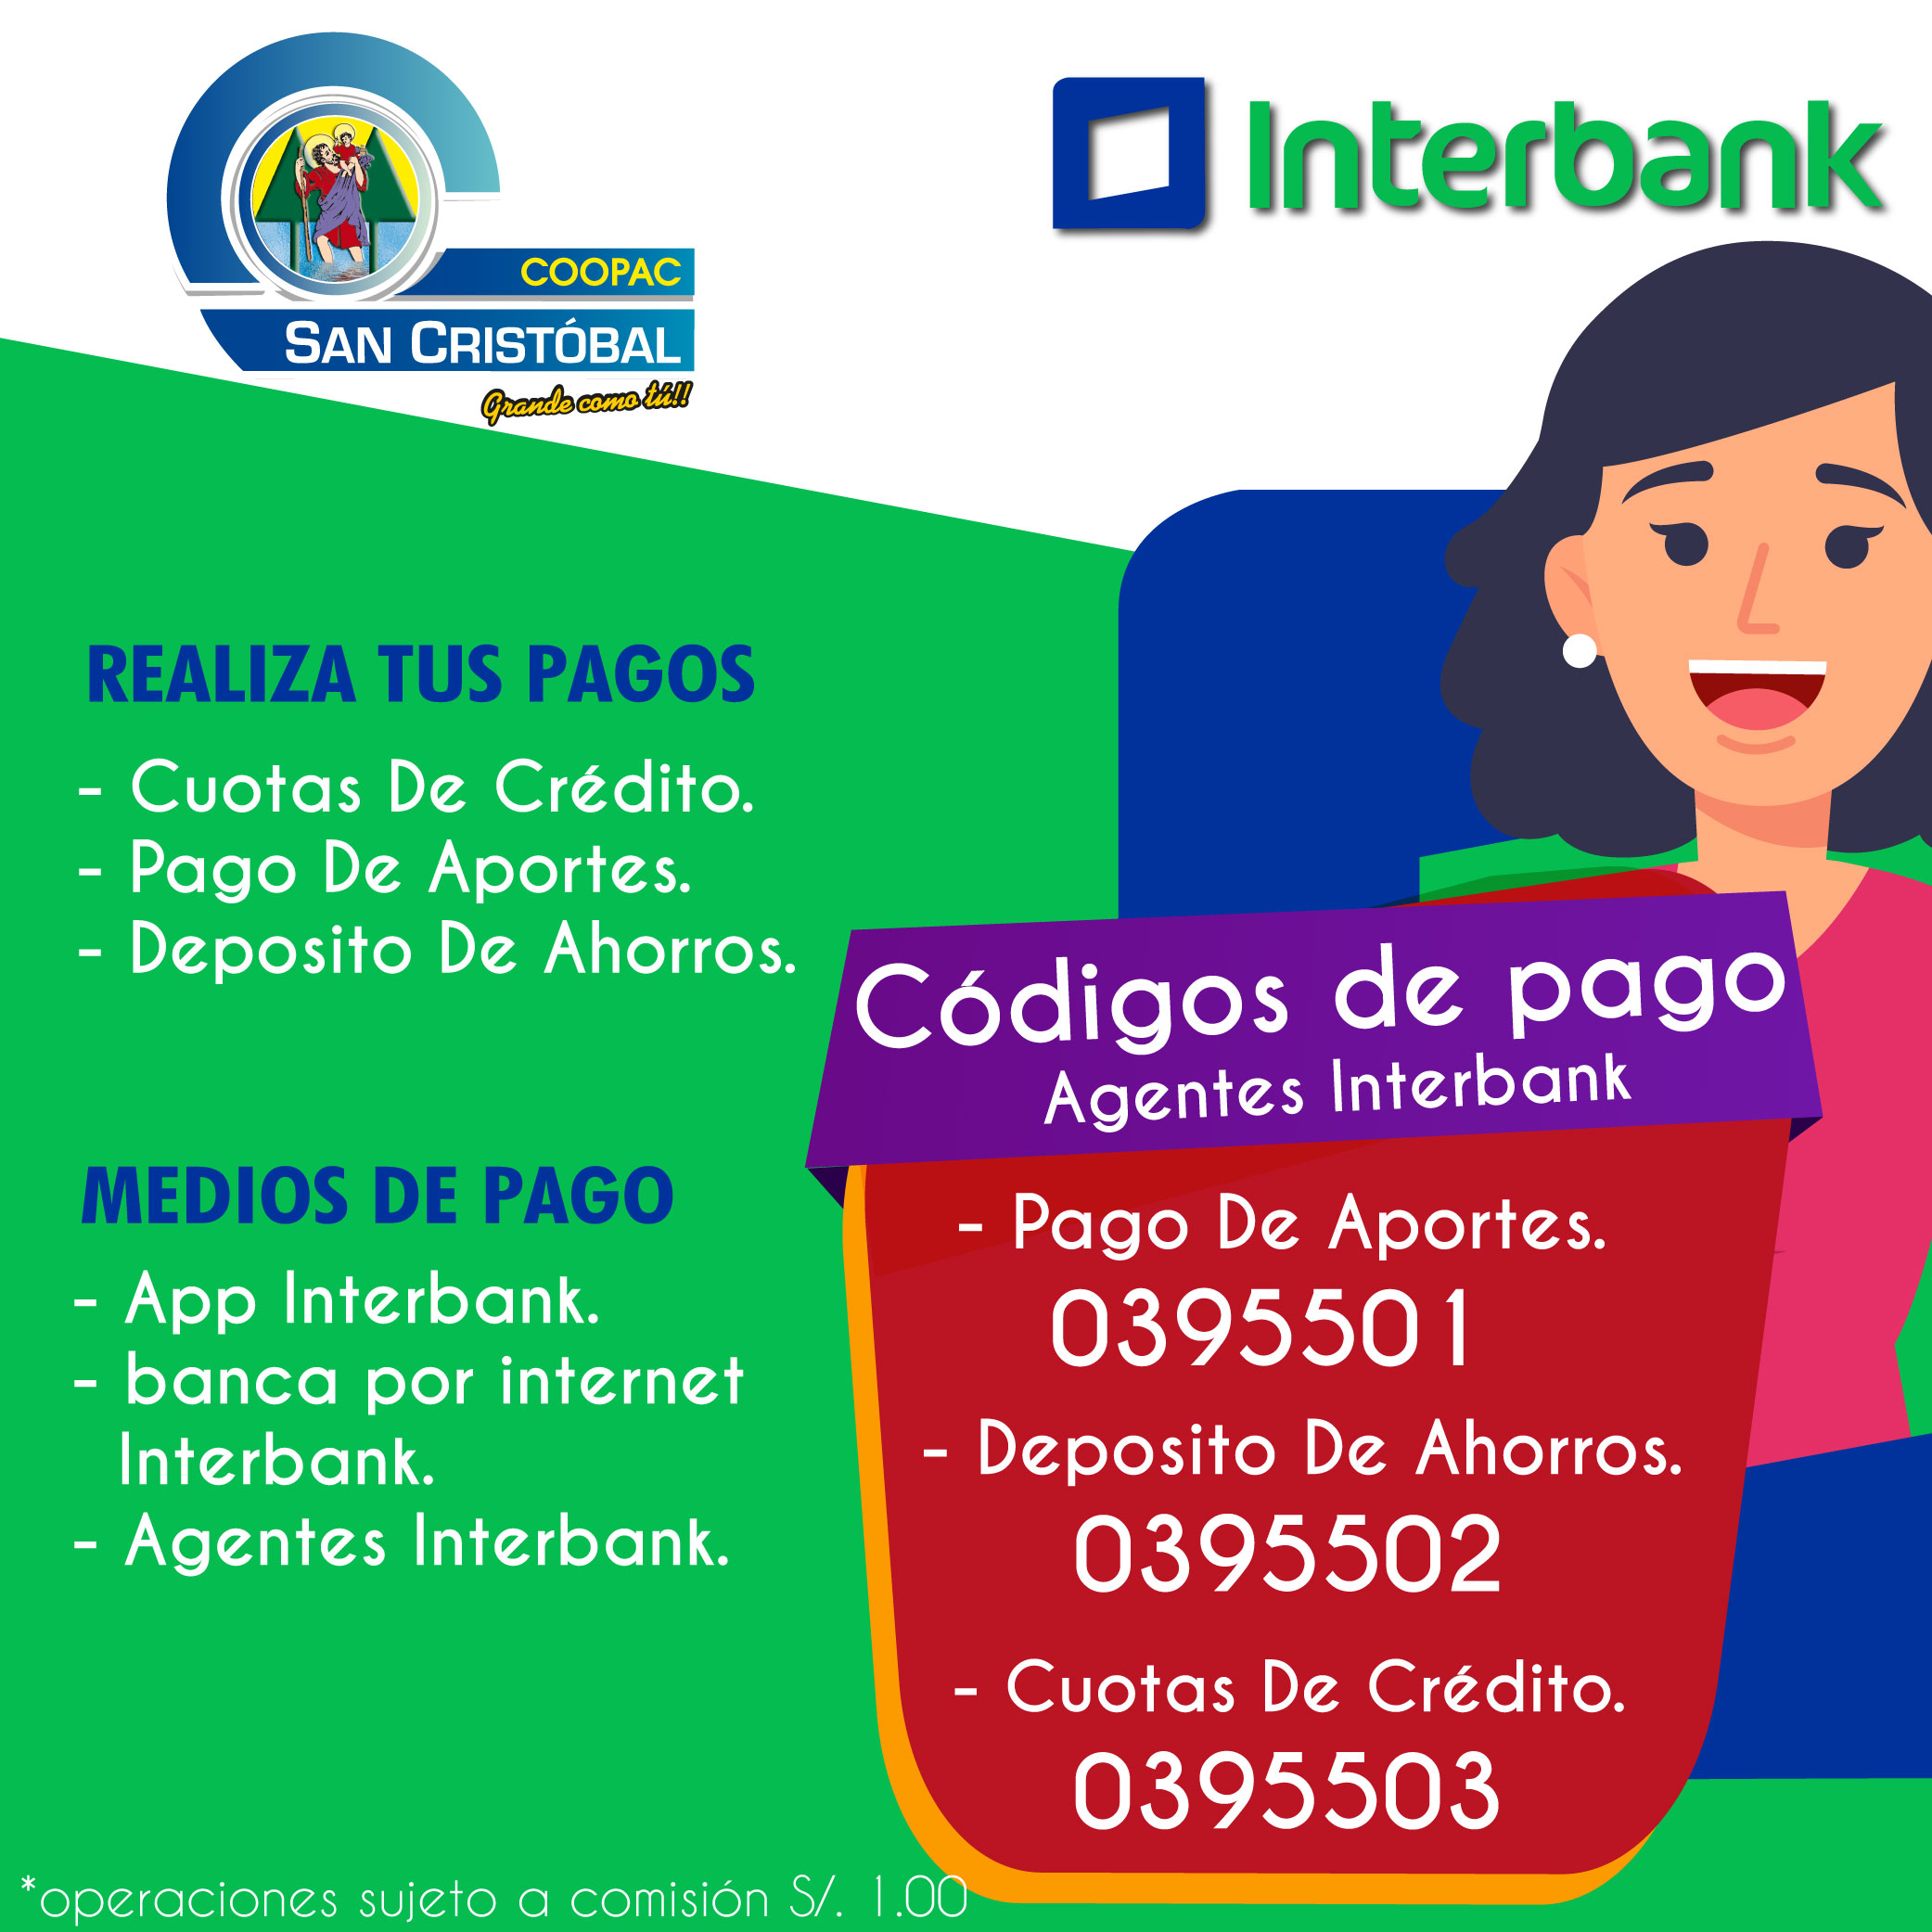 Recarudadora interbank